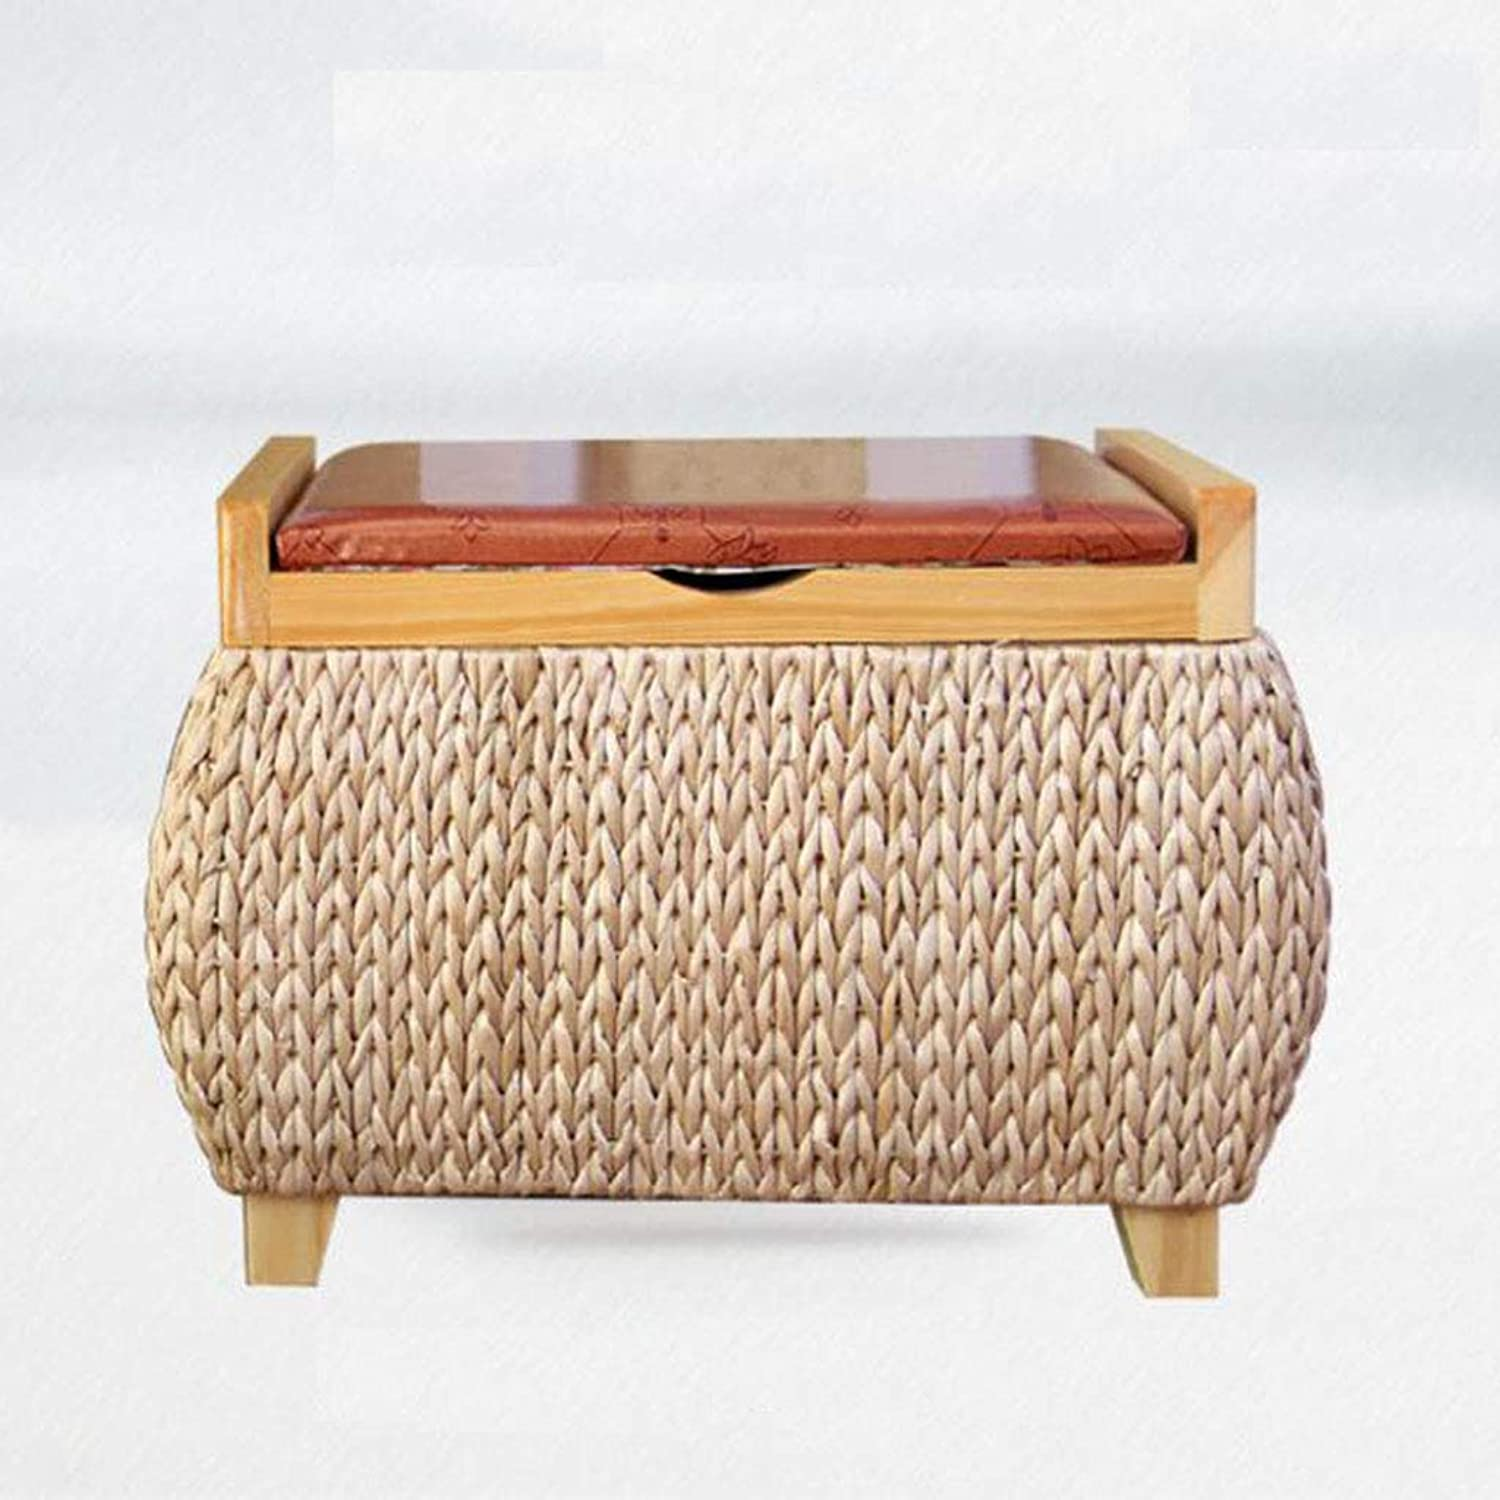 Cattail Handmade Storage shoes Stools Sofa Stools shoes Stools Storage Stools Sofas Stools (color   A1)